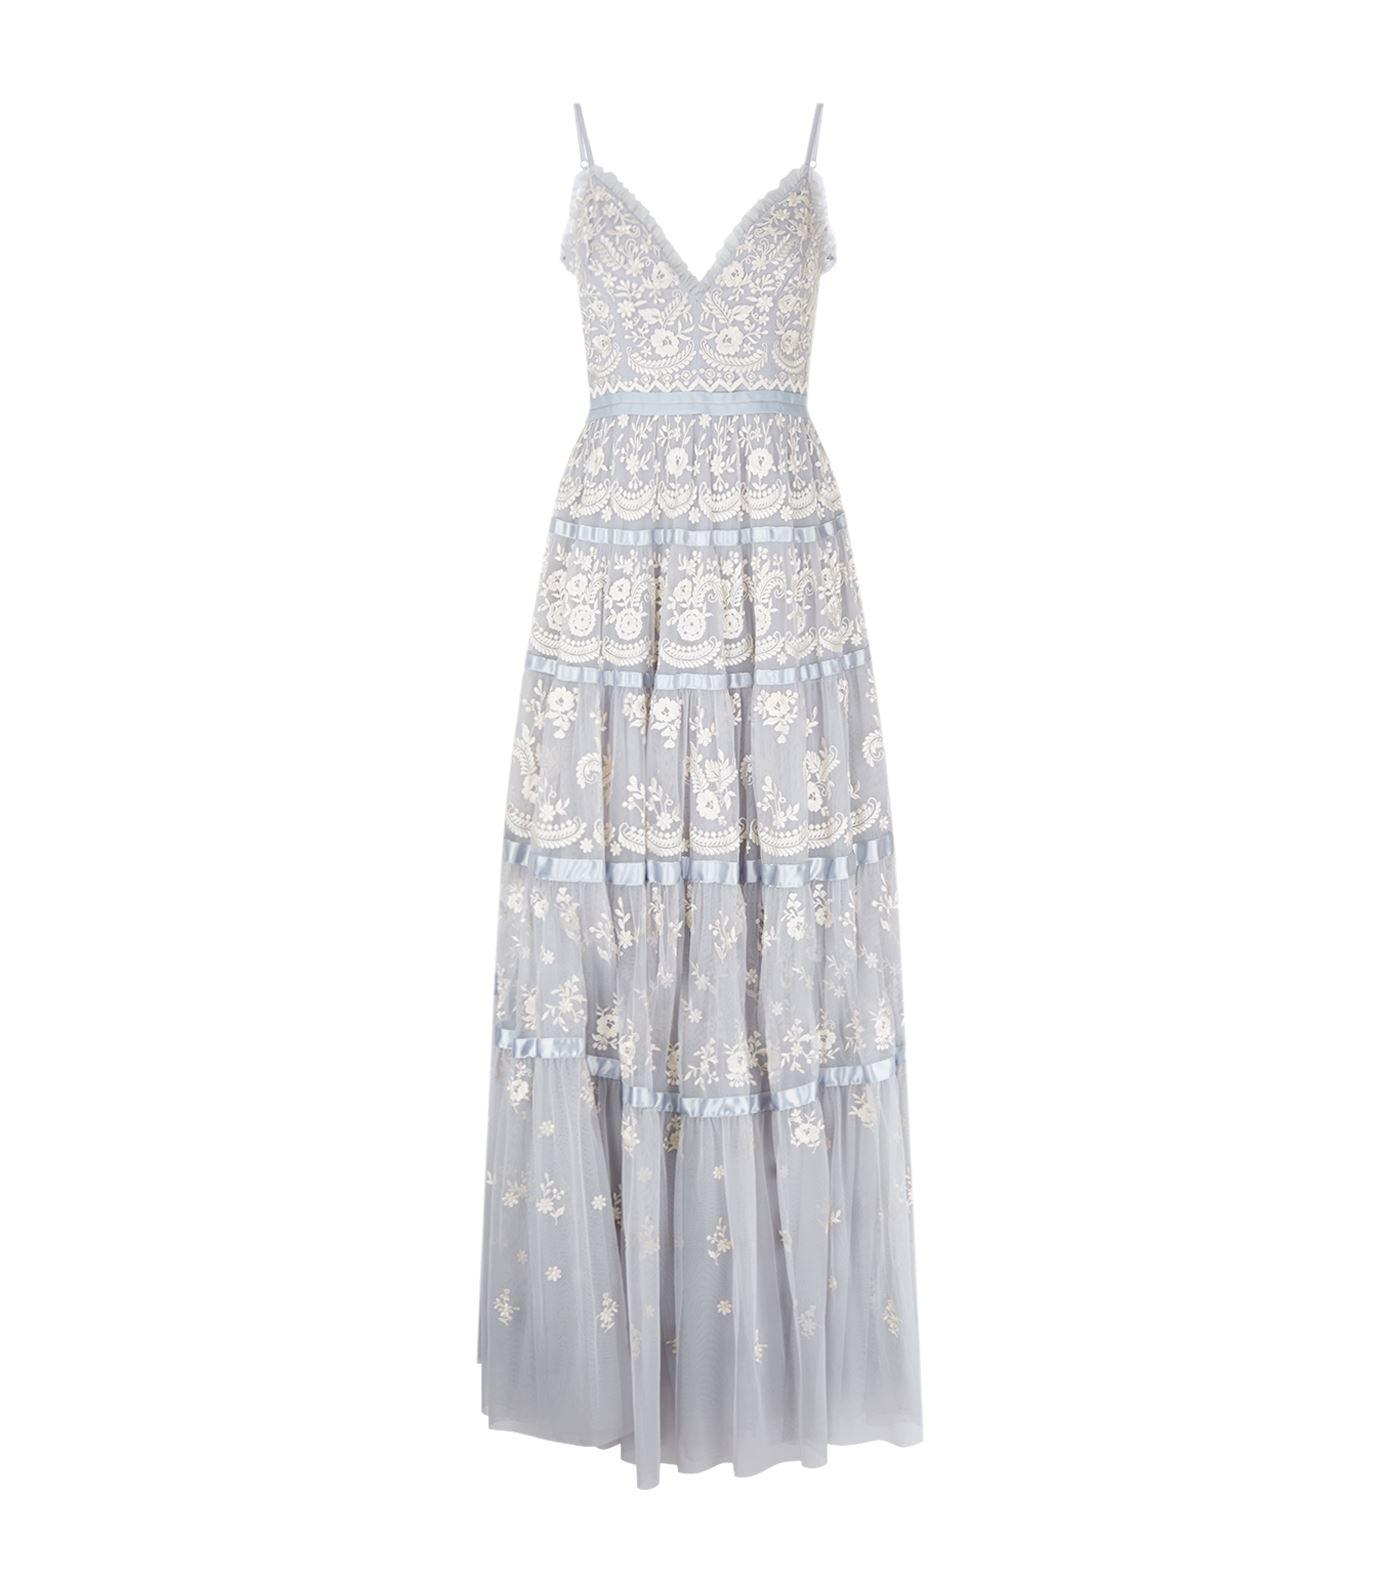 Lyst - Needle & Thread Embroidered Roses Bridal Gown in Blue